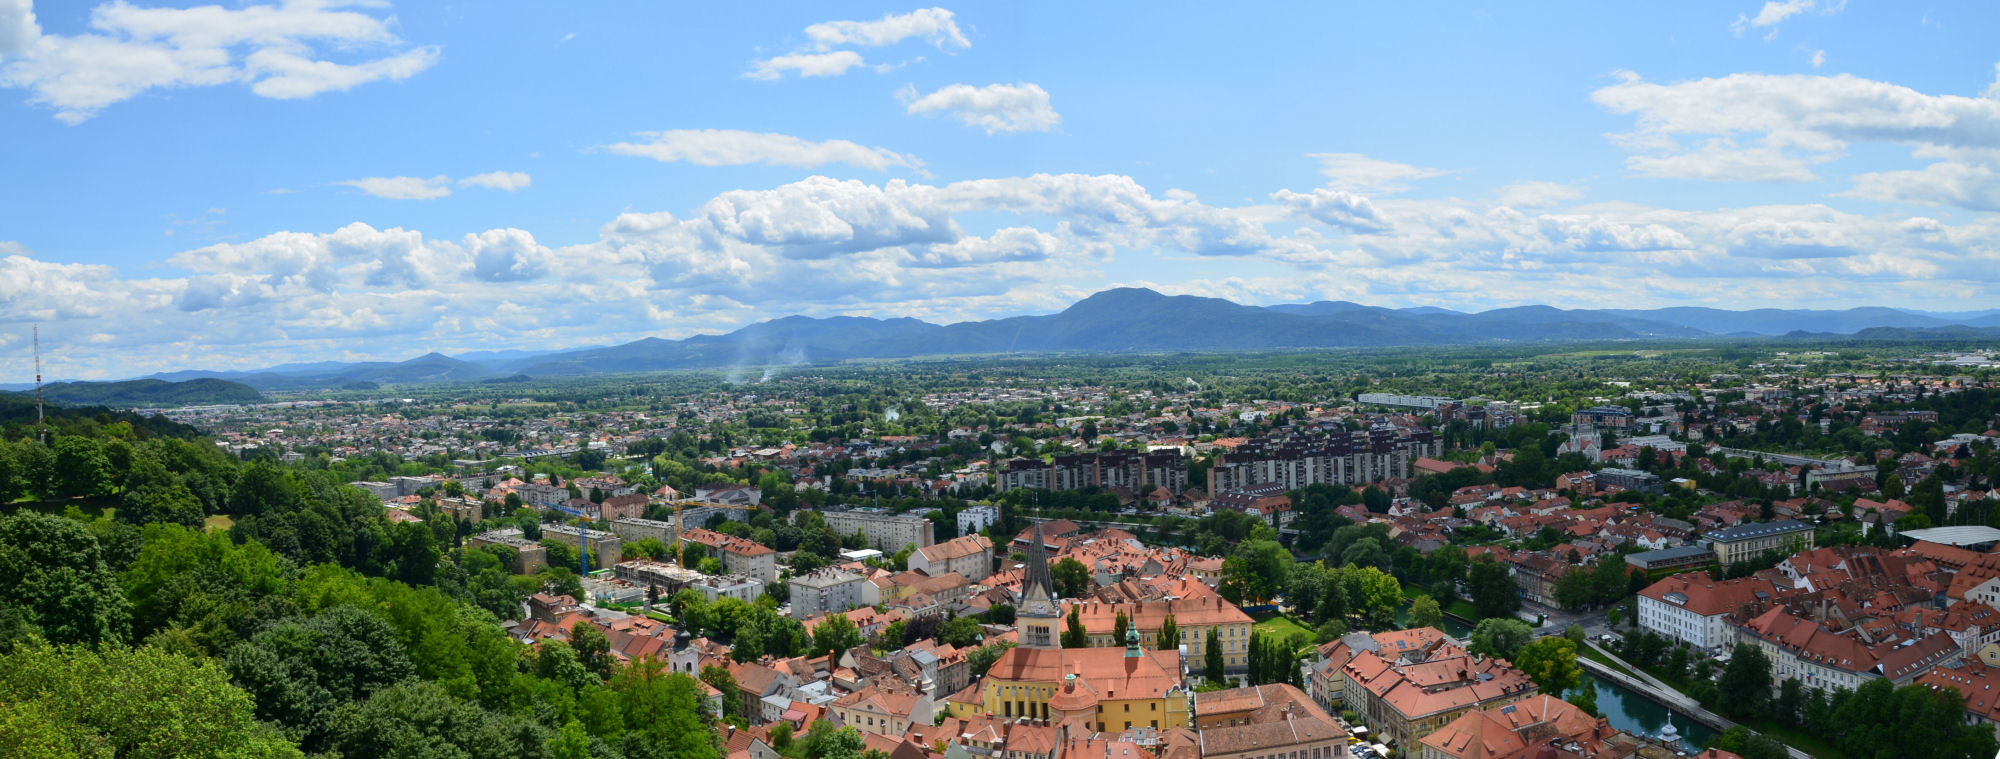 The views across Ljubljana, the capital of Slovenia are worth the visit alone